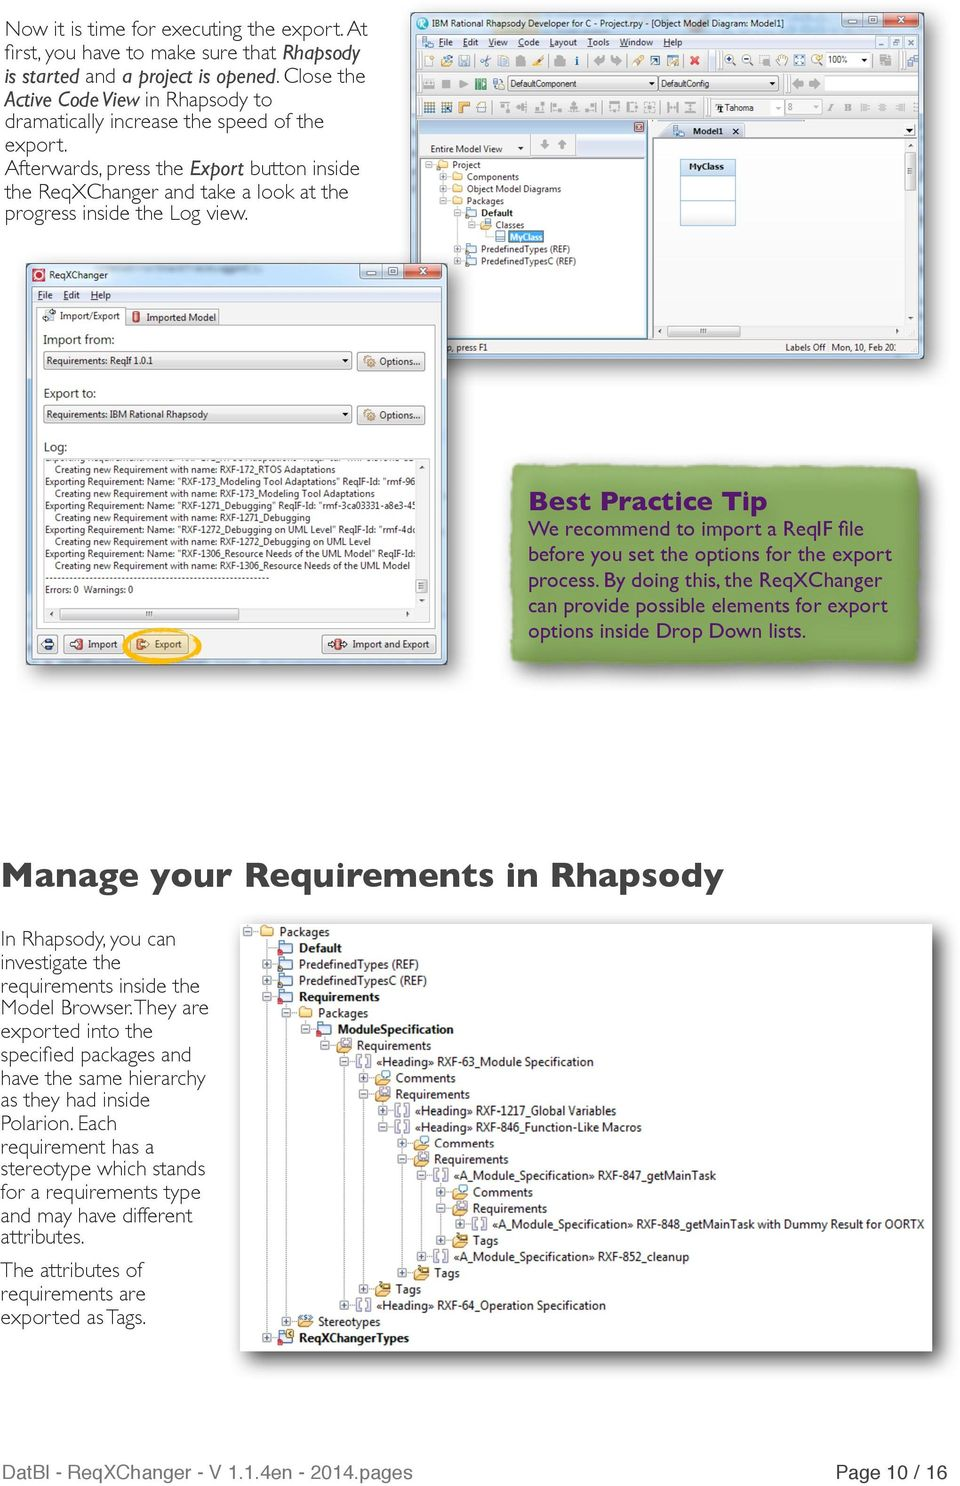 Best Practice Tip We recommend to import a ReqIF file before you set the options for the export process.